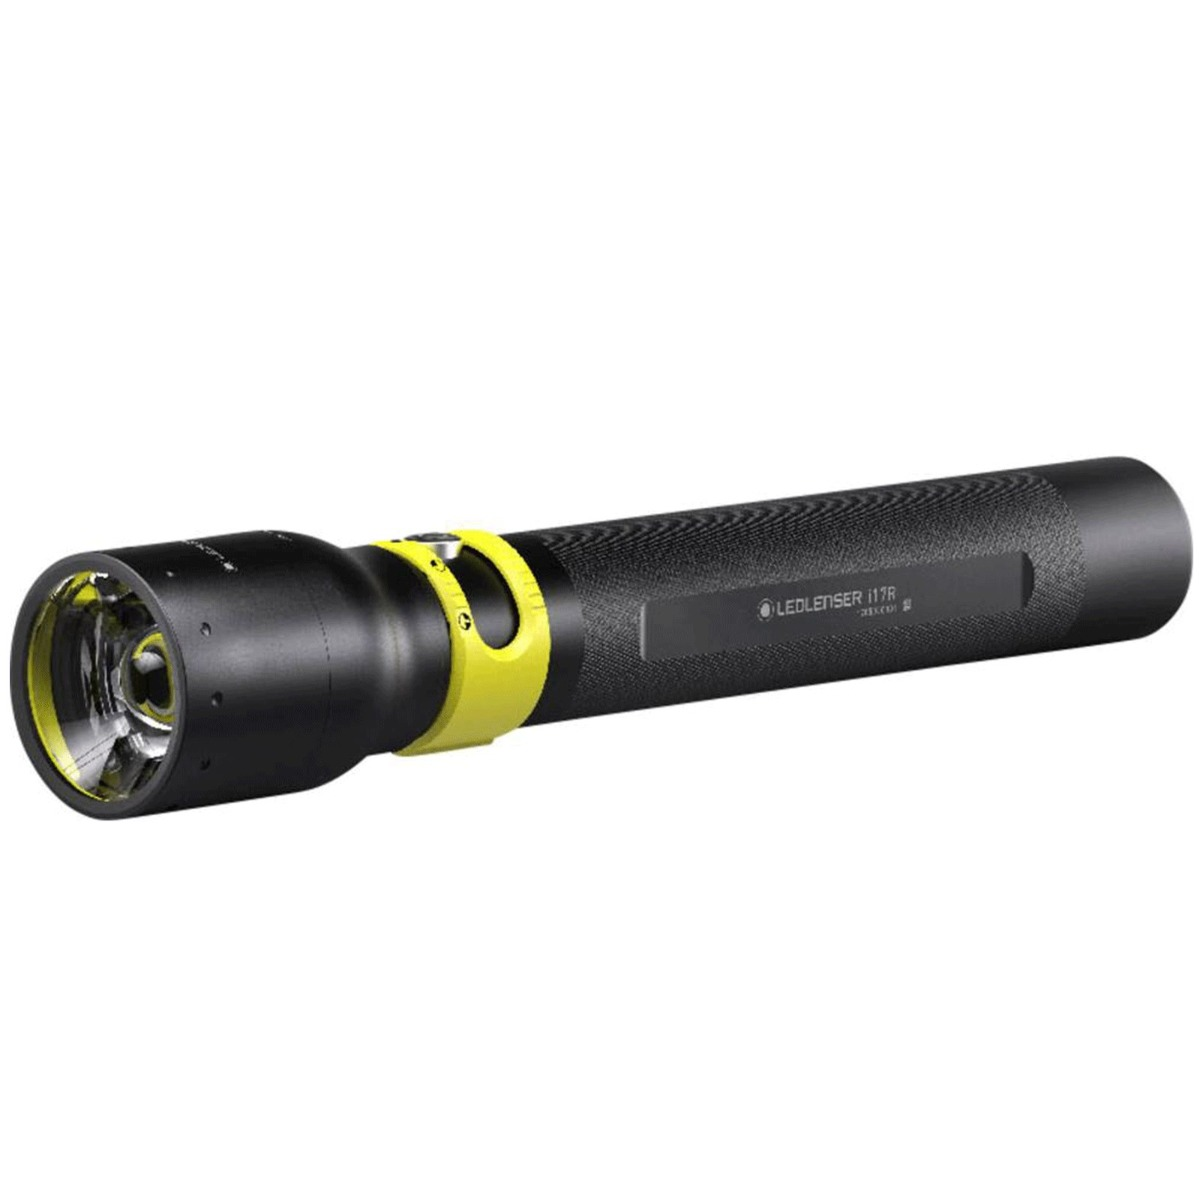 LED Lenser I17R Rechargeable Professional Hand Torch